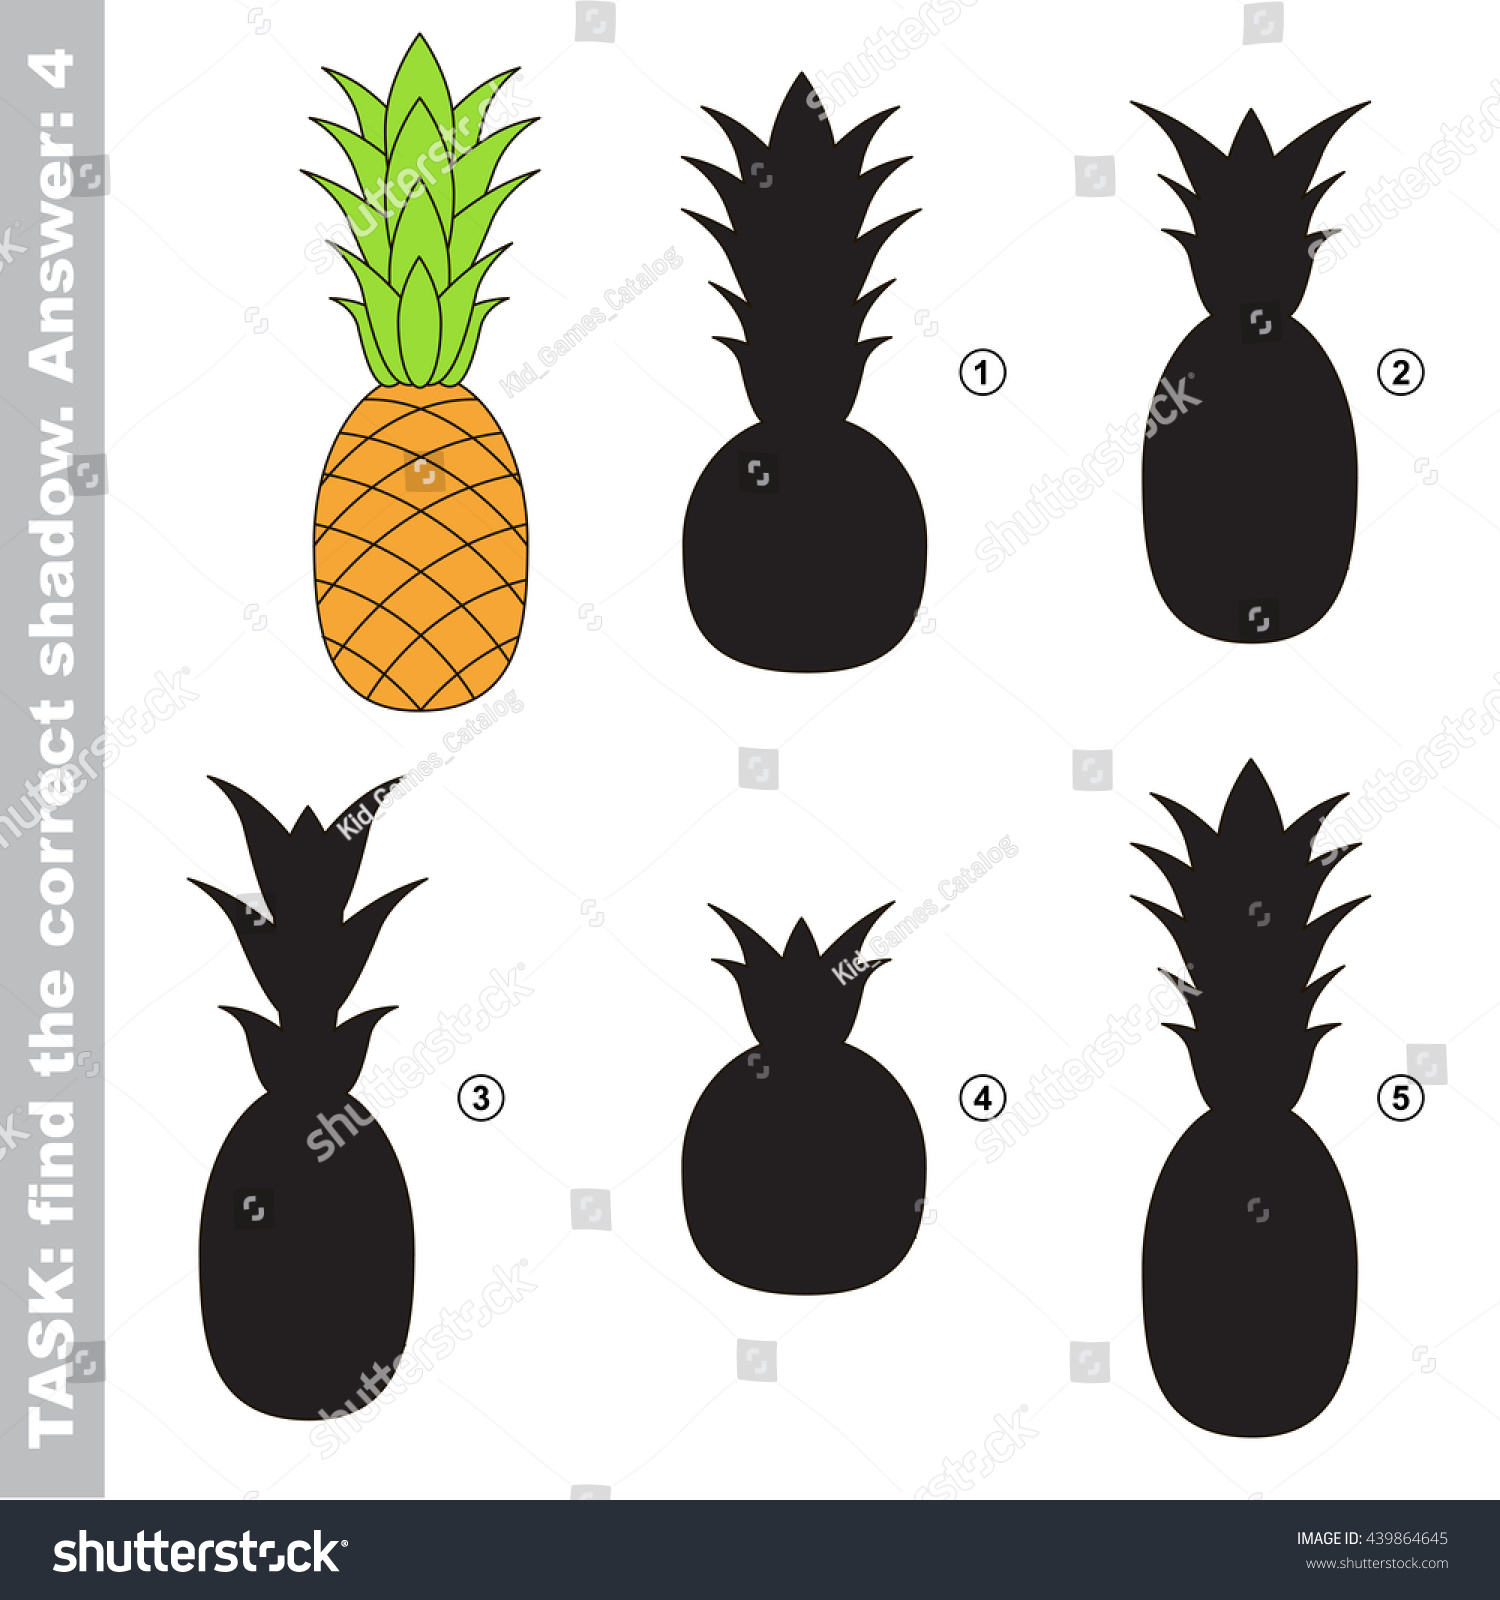 Ripe Pineapple Different Shadows Find Correct Stock Vector